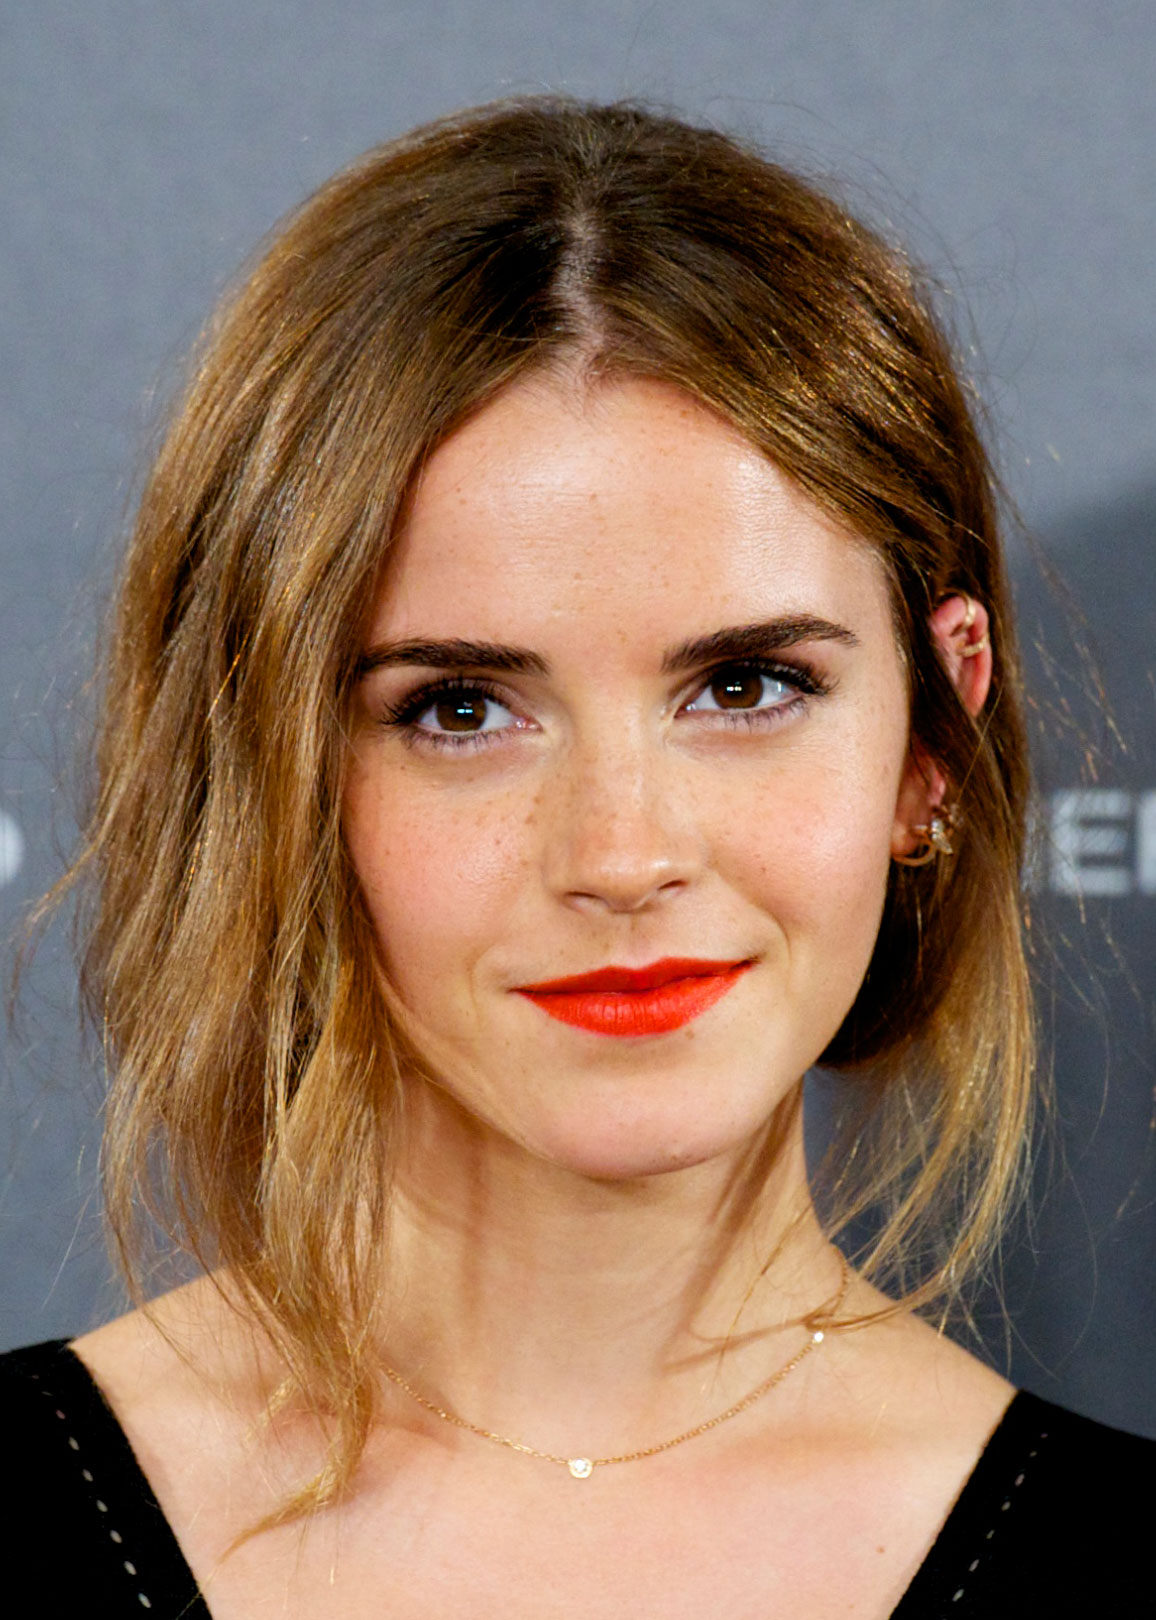 Emma Watson Channels Princess Belle With New Hair Beauty